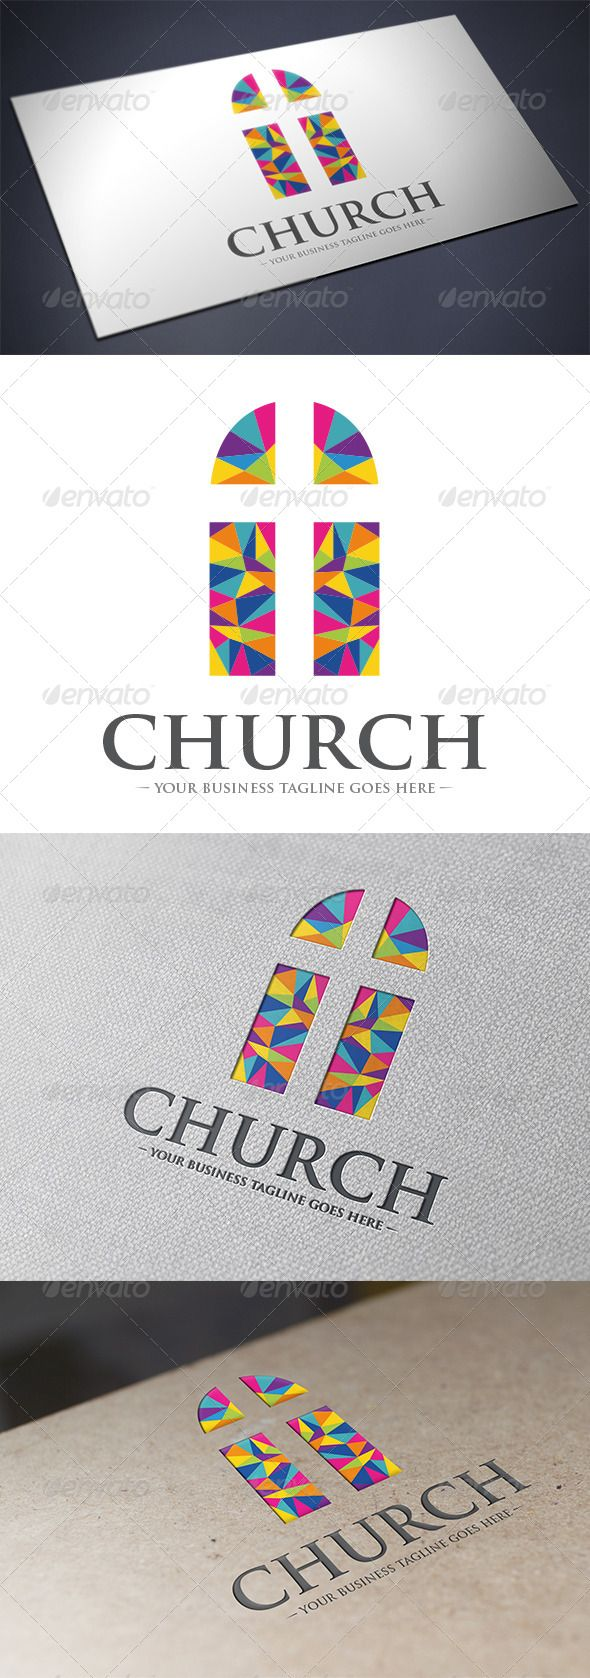 Church Logo Template — Vector EPS #hope #priest • Available here → https://graphicriver.net/item/church-logo-template/5628791?ref=pxcr